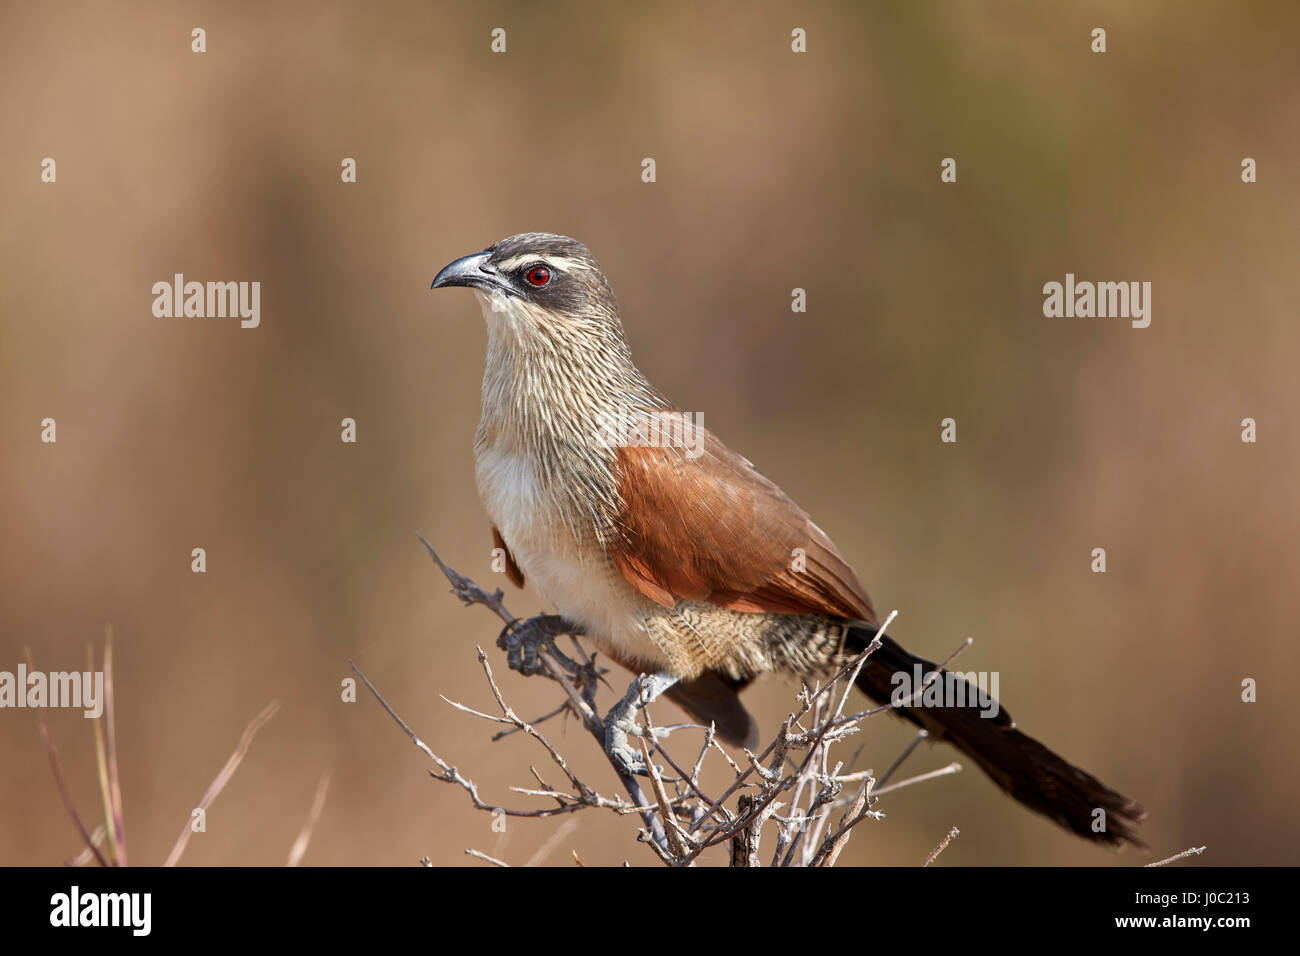 White-browed coucal (Centropus superciliosus), Selous Game Reserve, Tanzania - Stock Image